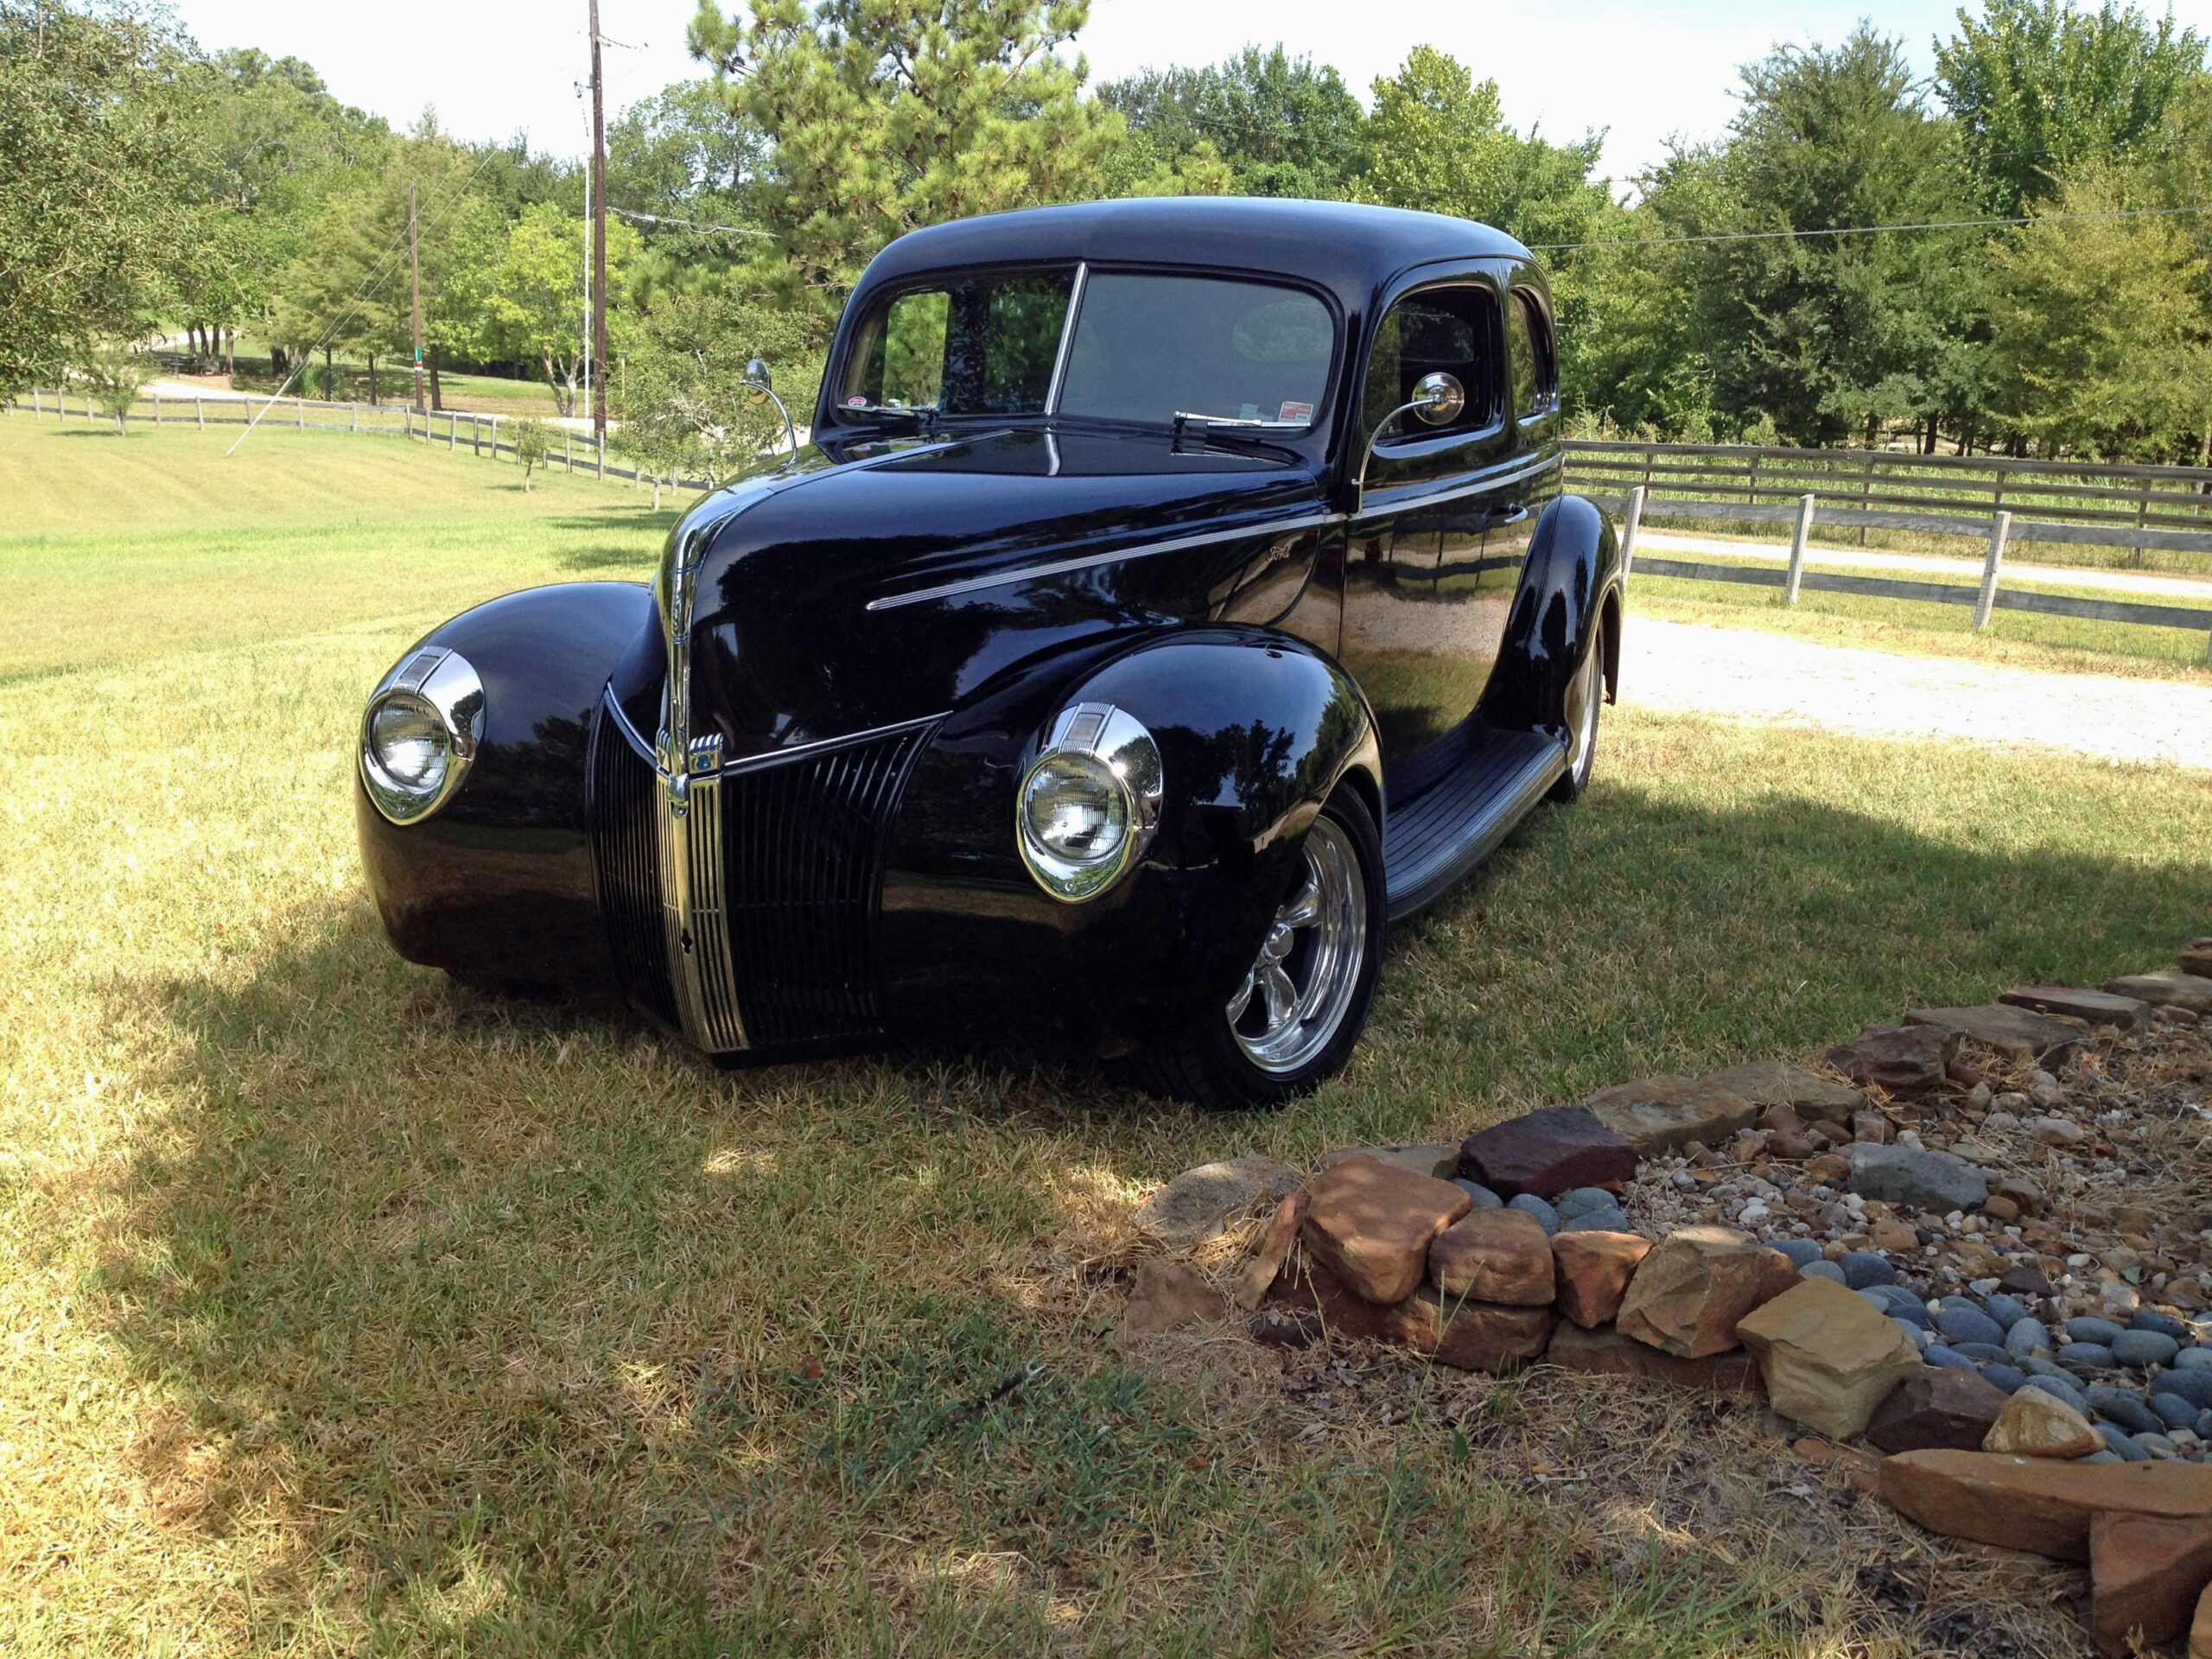 Paul Cunningham, Willis, Texas- 1940 Ford 2-door Standard